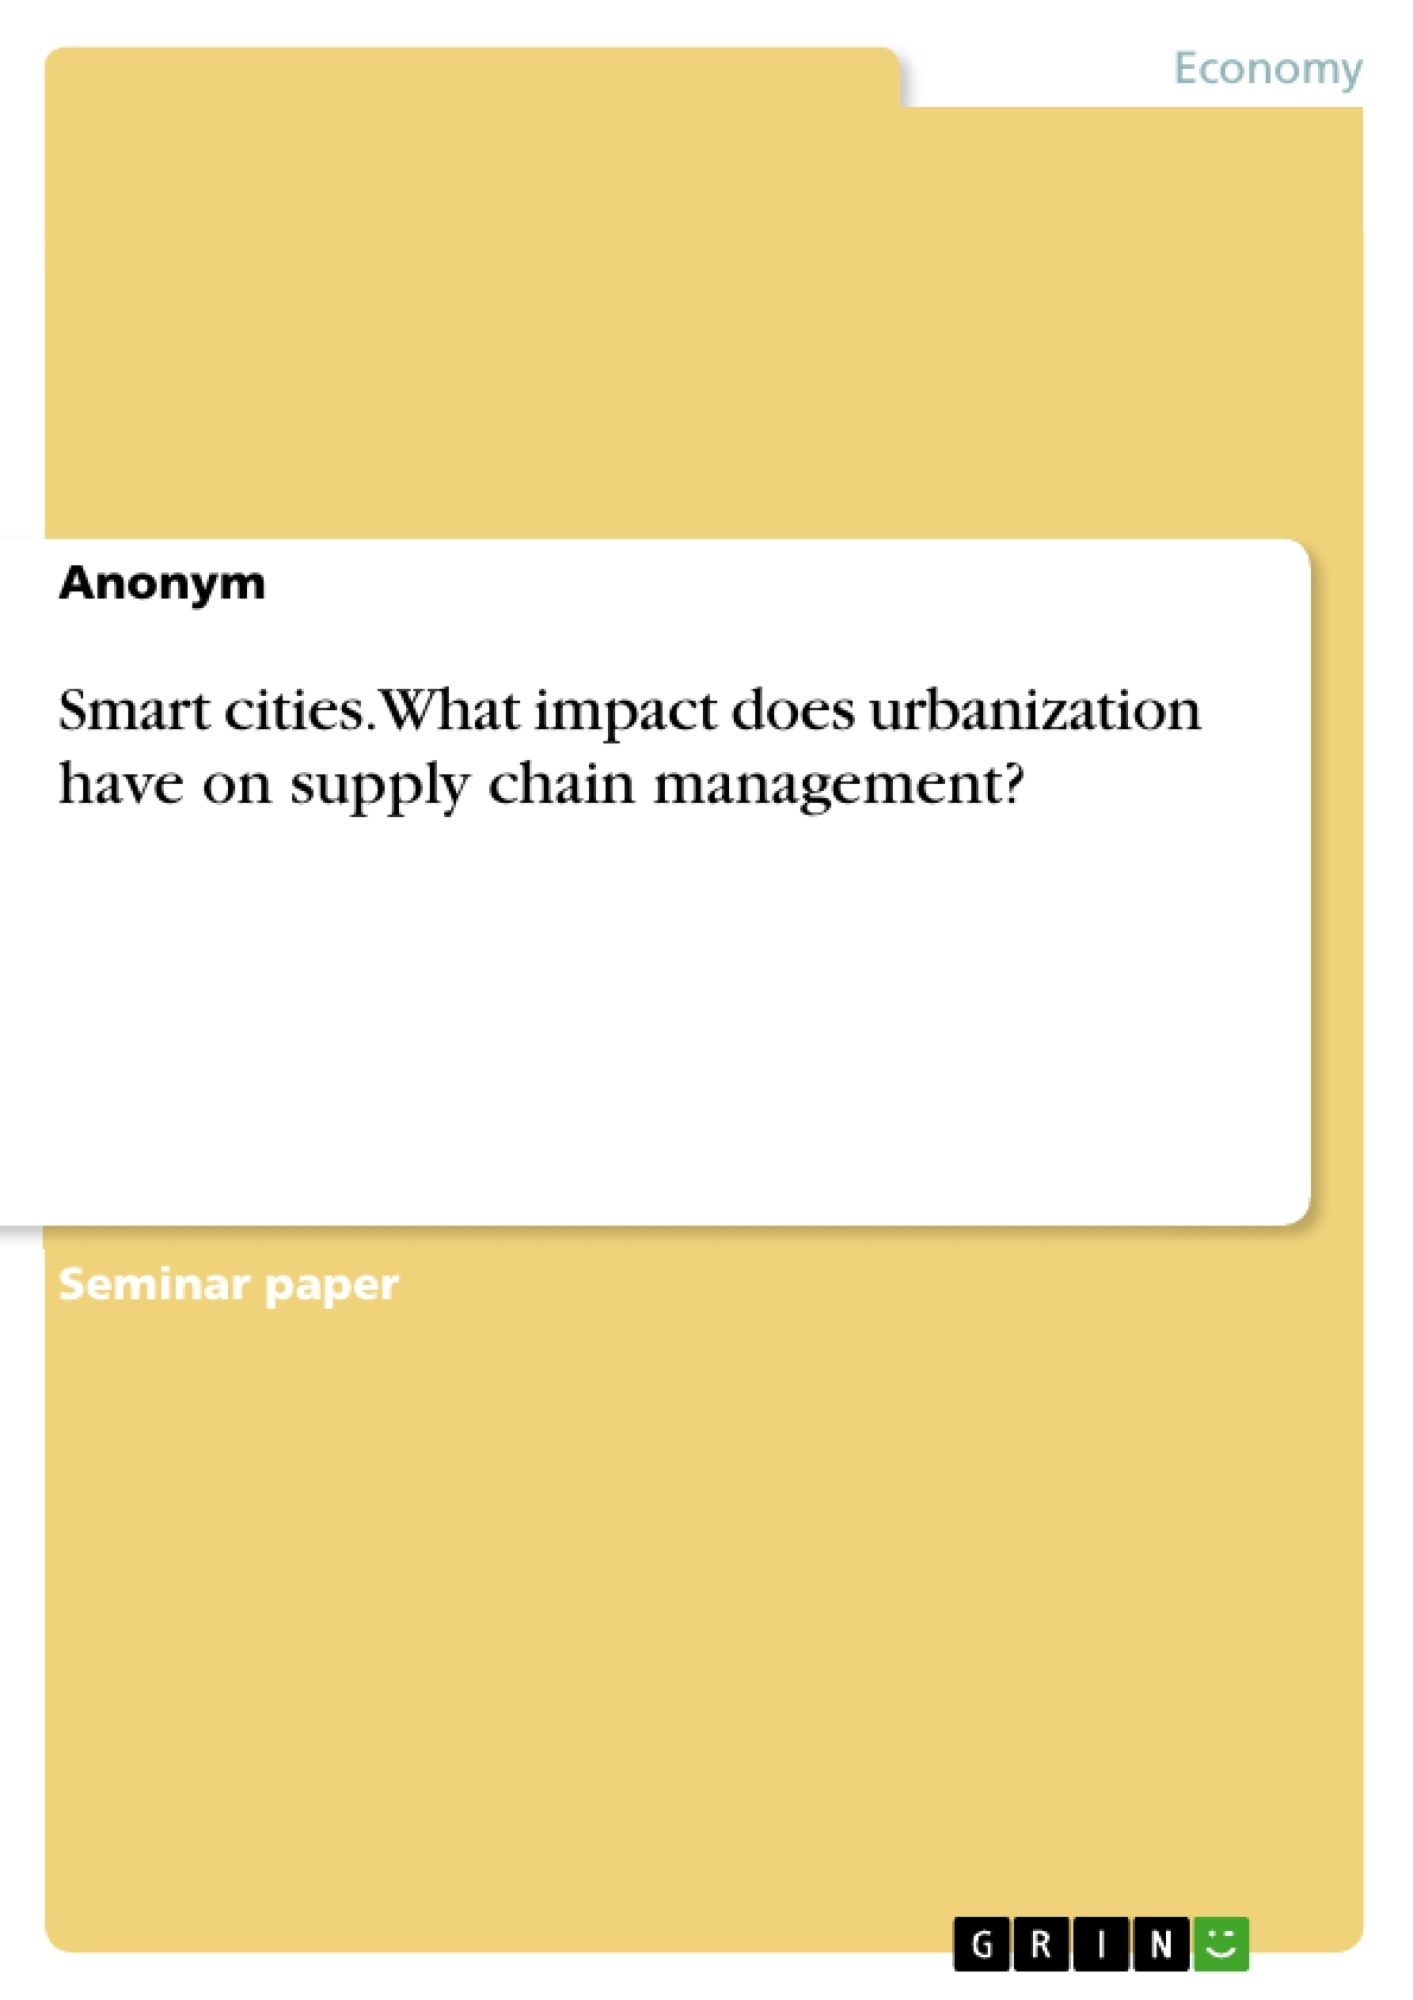 Title: Smart cities. What impact does urbanization have on supply chain management?